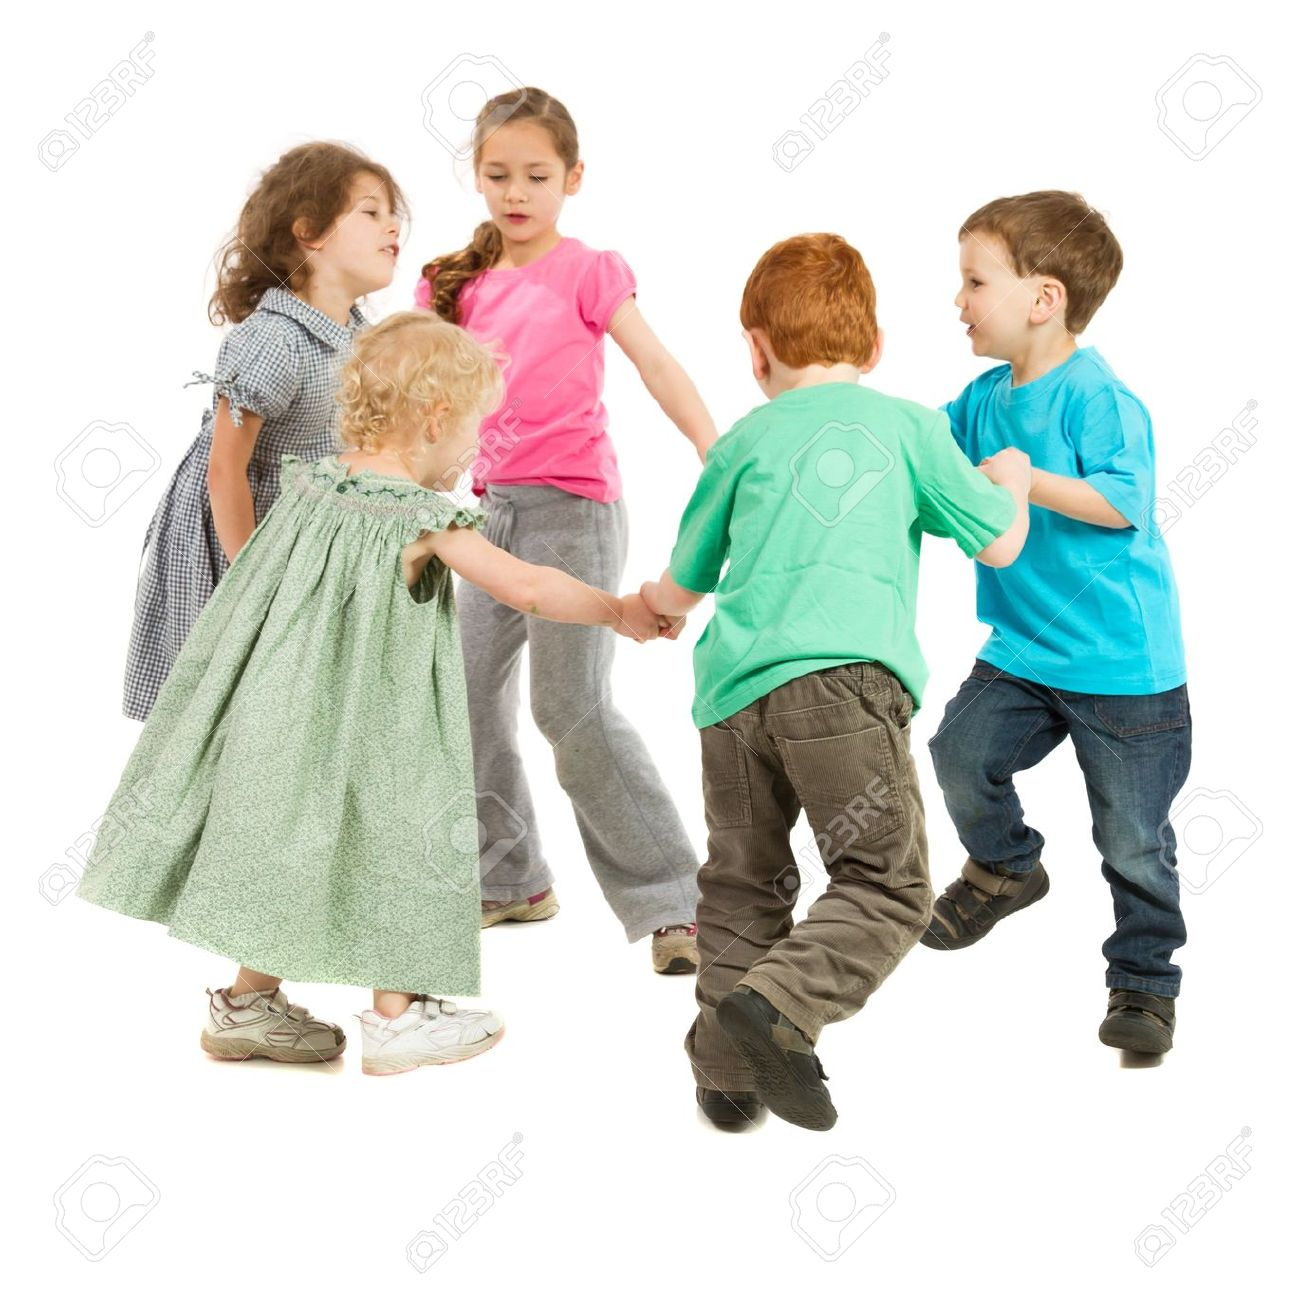 Kids holding hands and playing circle game On white - 15920287